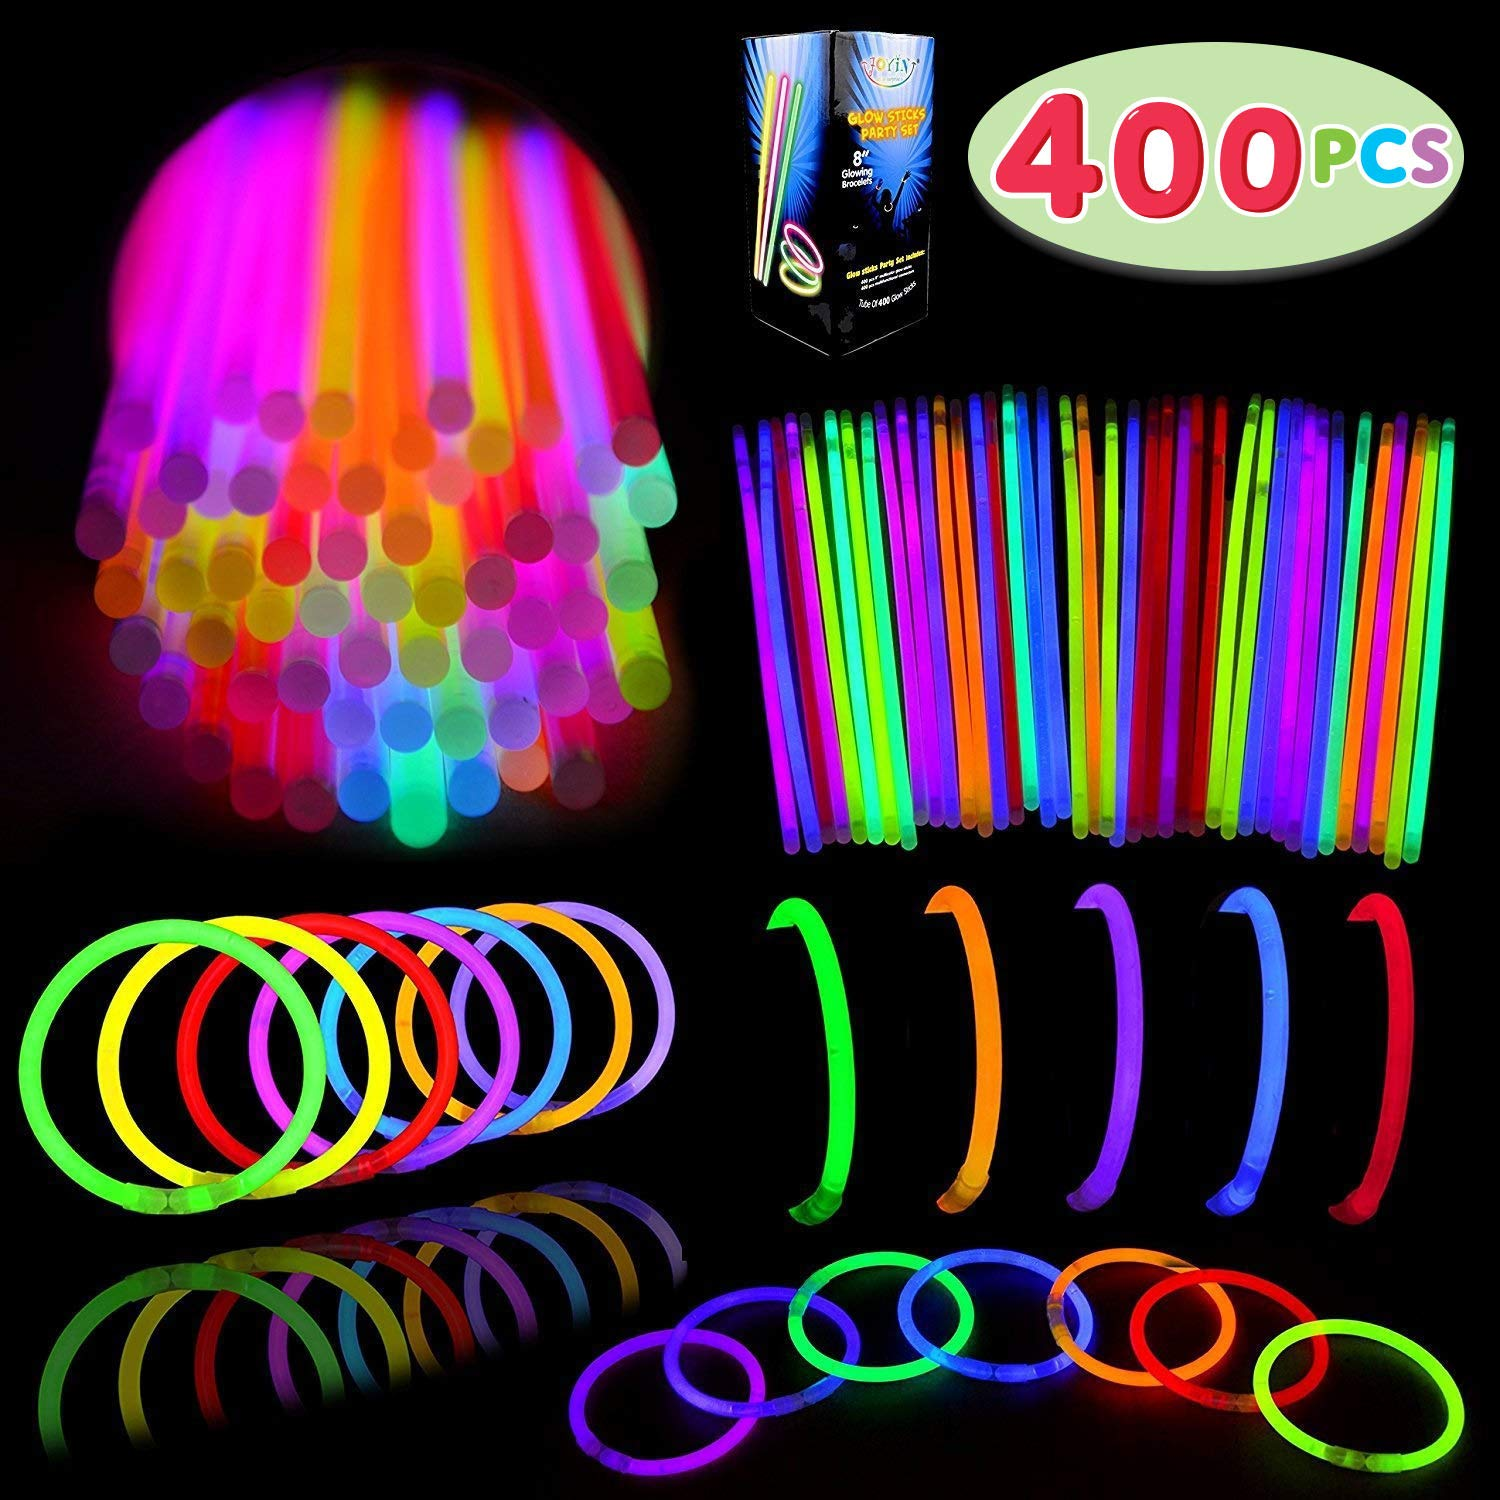 Glow Sticks Bulk 400 8 Glowsticks (Total 800 Pcs 7 Colors); Glow Stick Bracelets; Glow Necklaces Superbowl Party Supplies Pack with 400 Bracelet Connectors.